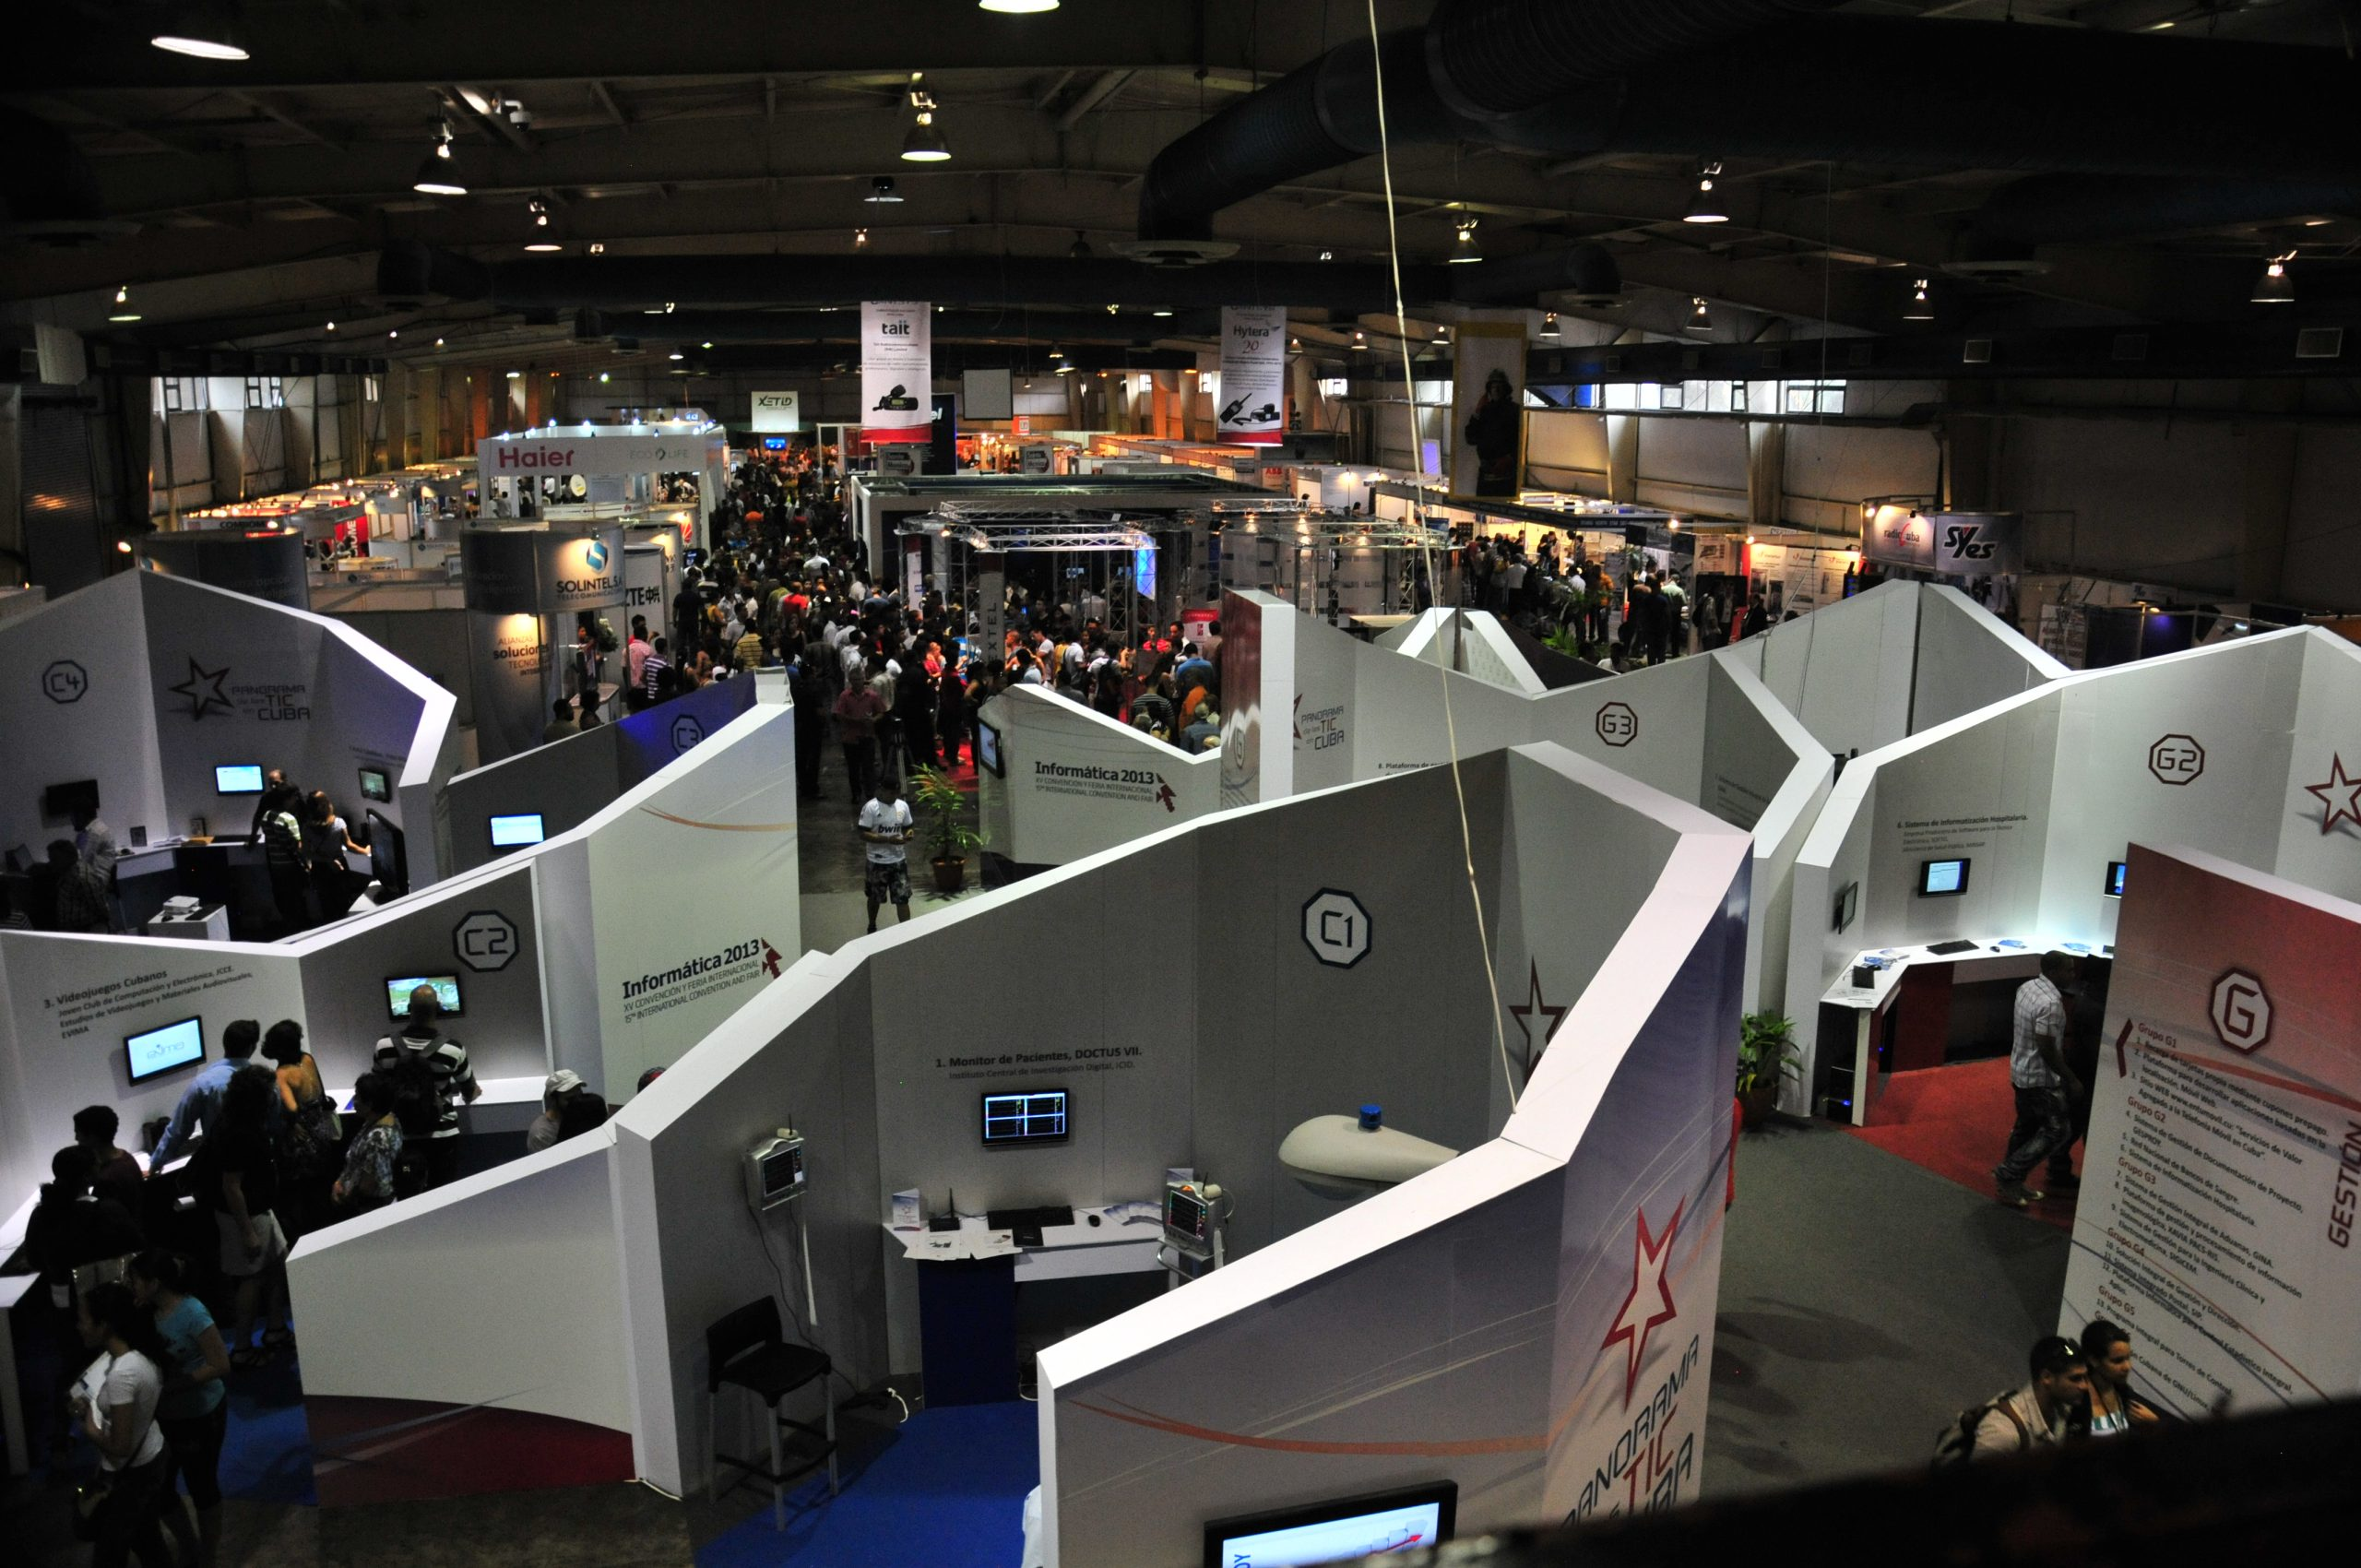 2013 A view of one of the halls of the Exhibitory Fair